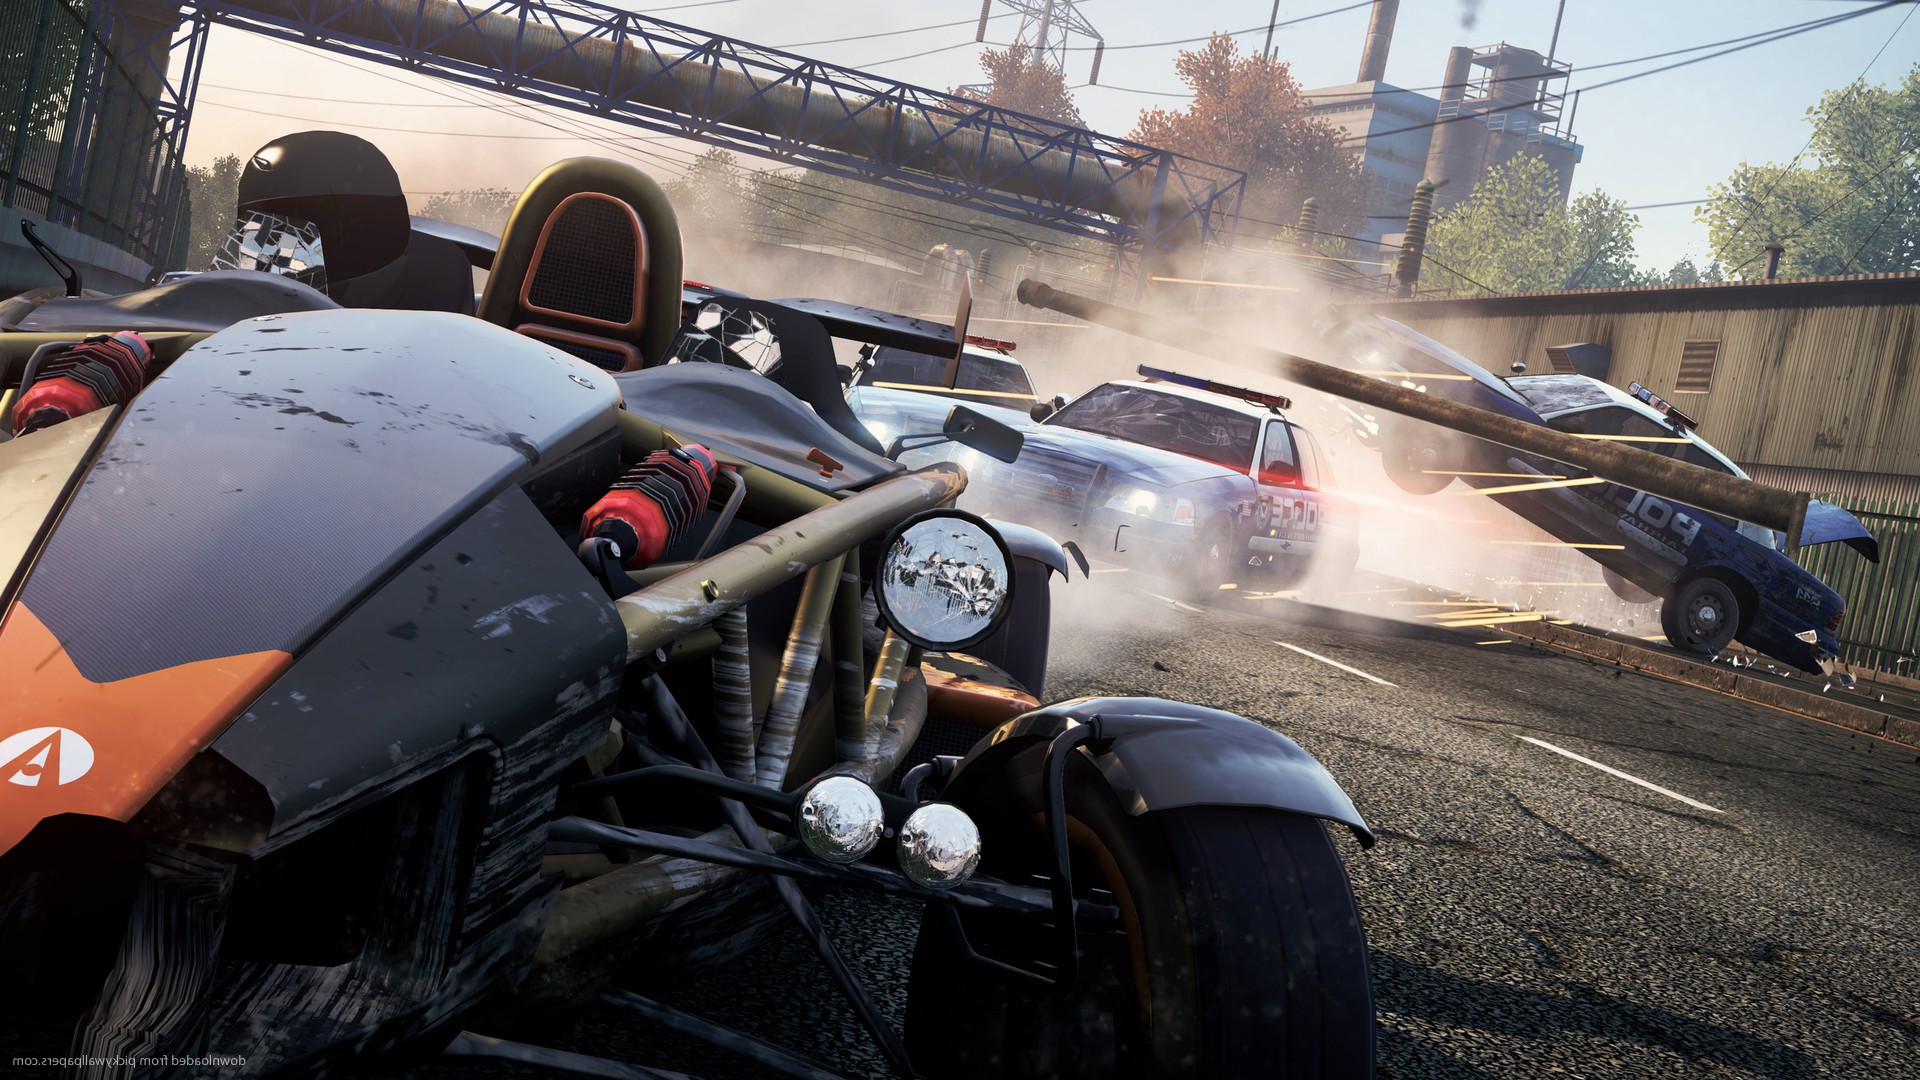 Nfs Movie Cars Wallpaper Ariel Atom V8 Need For Speed Most Wanted 2012 Video